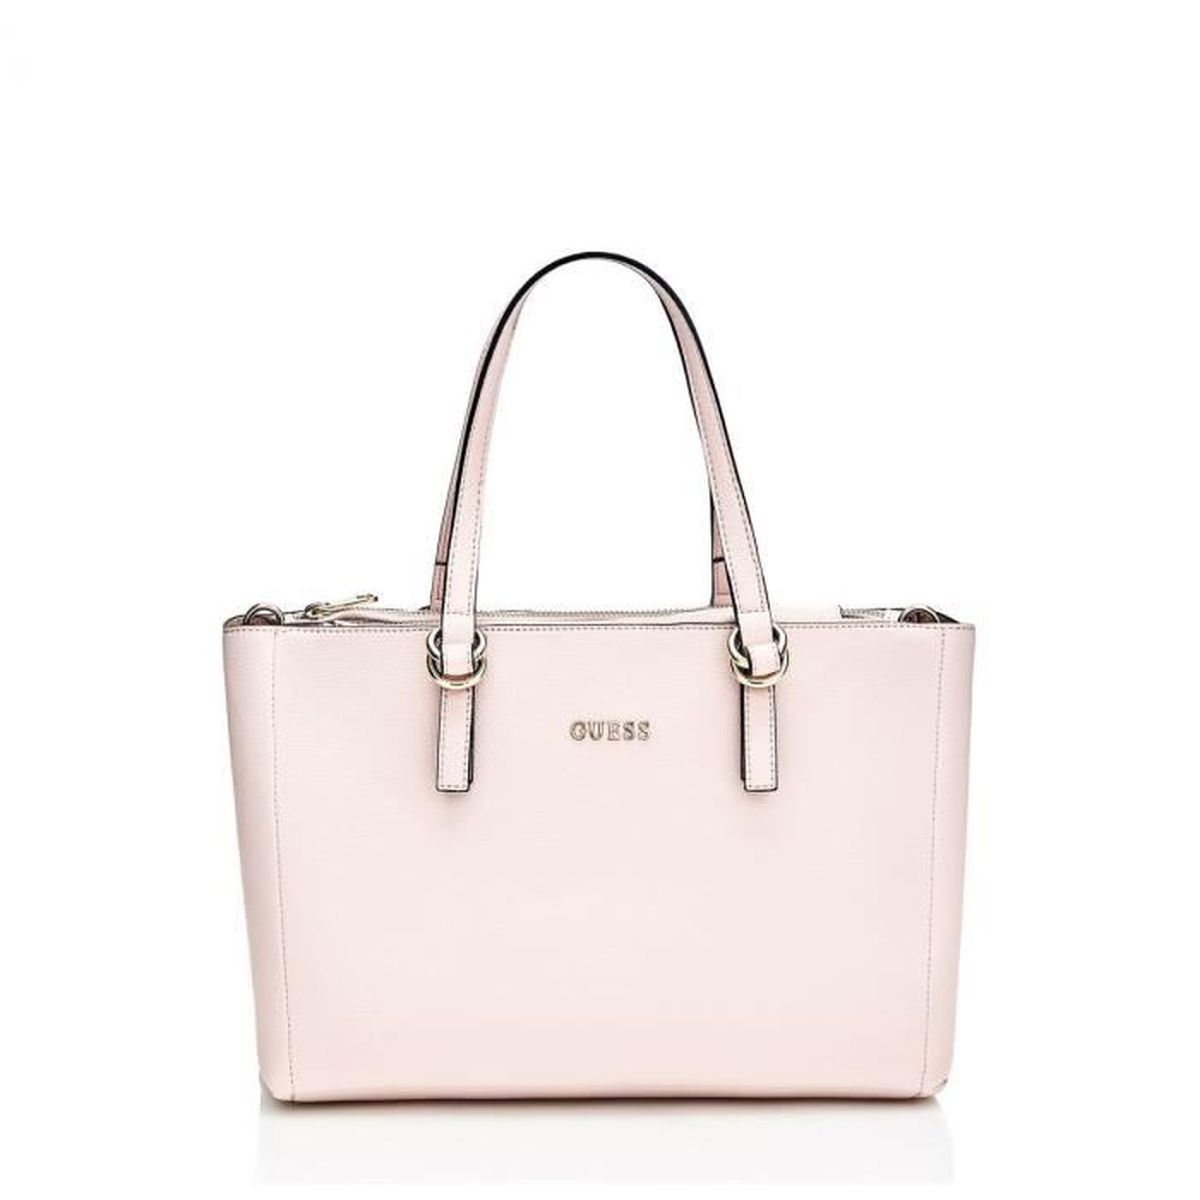 Sac D'épaule Guess Achat Hwtulip7208 Taille Xrfnsrg40q Tulip Whi DHYWE2I9